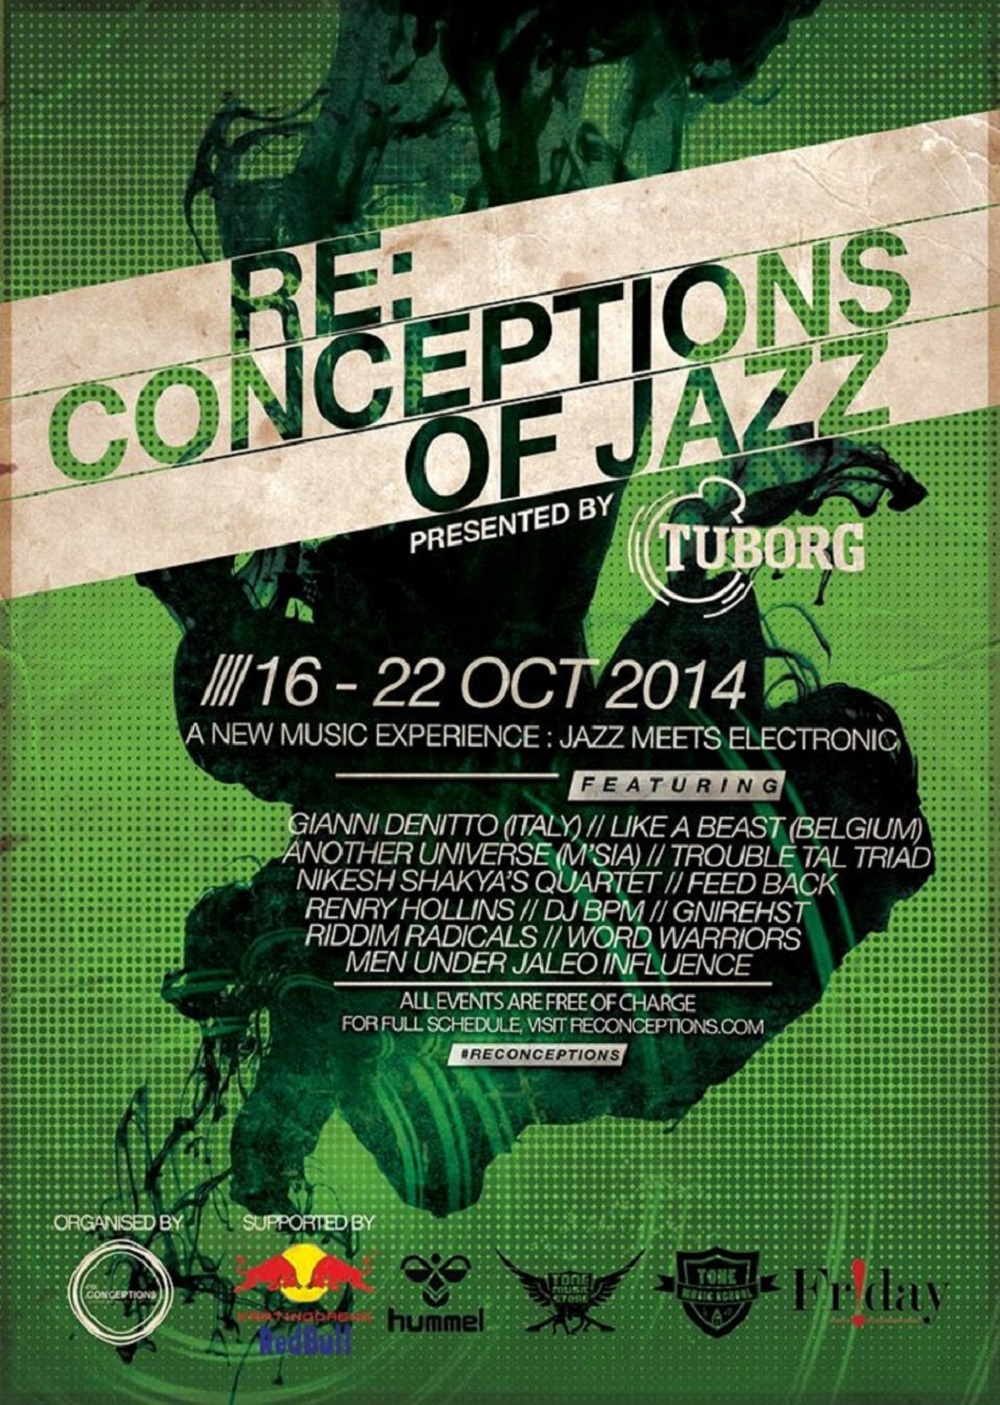 ReConceptionsOfJazz#14